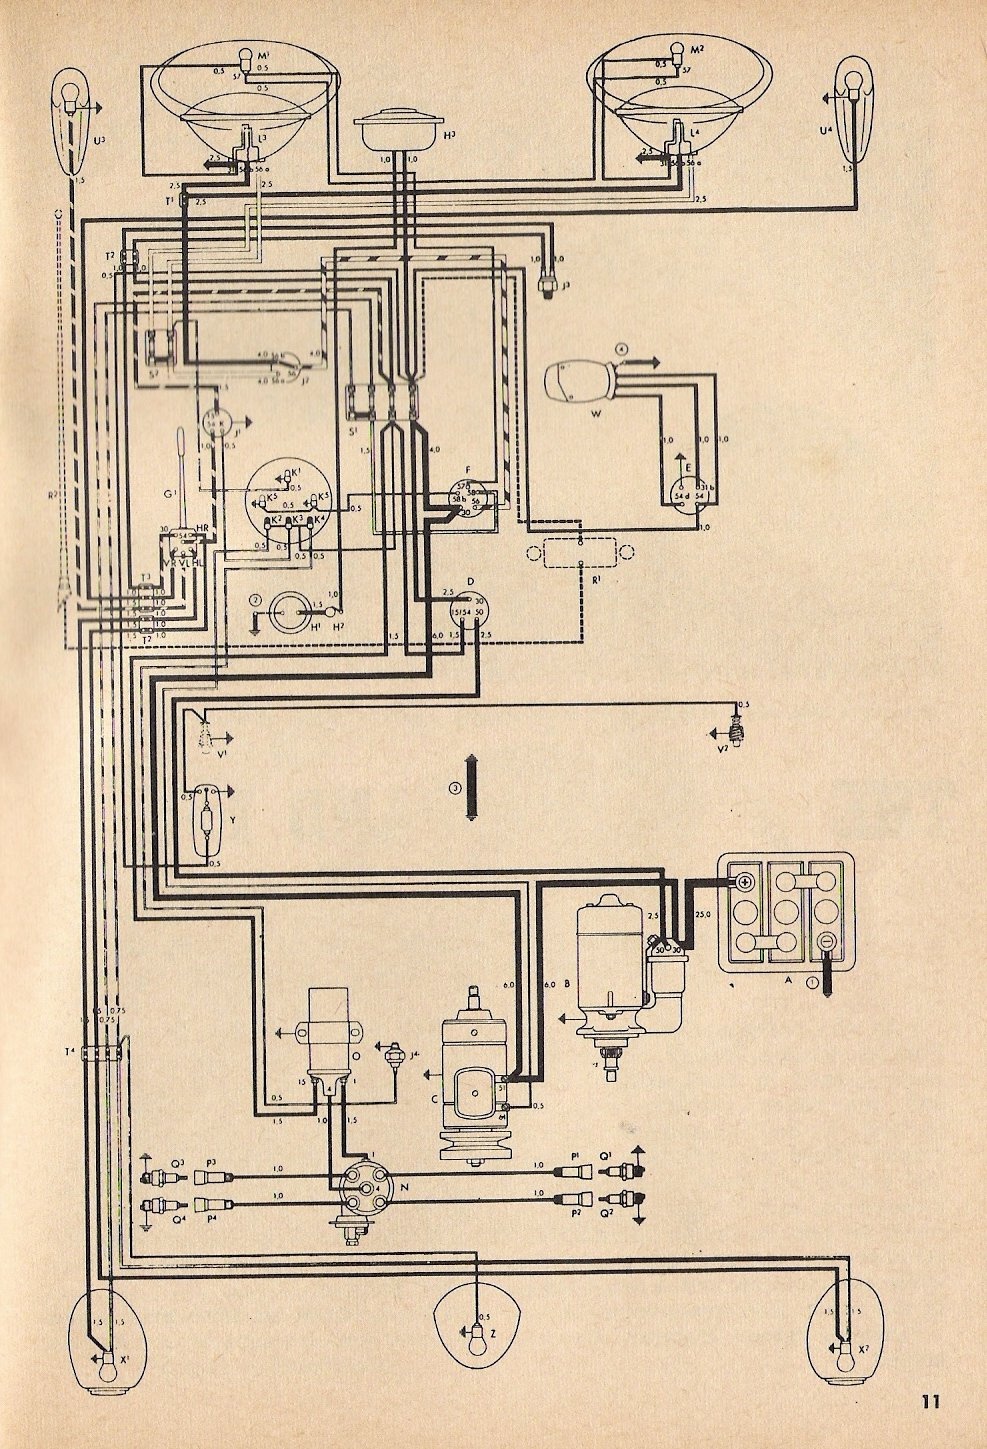 bug_toaug57 1957 beetle wiring diagram thegoldenbug com 2002 vw beetle wiring diagram at soozxer.org